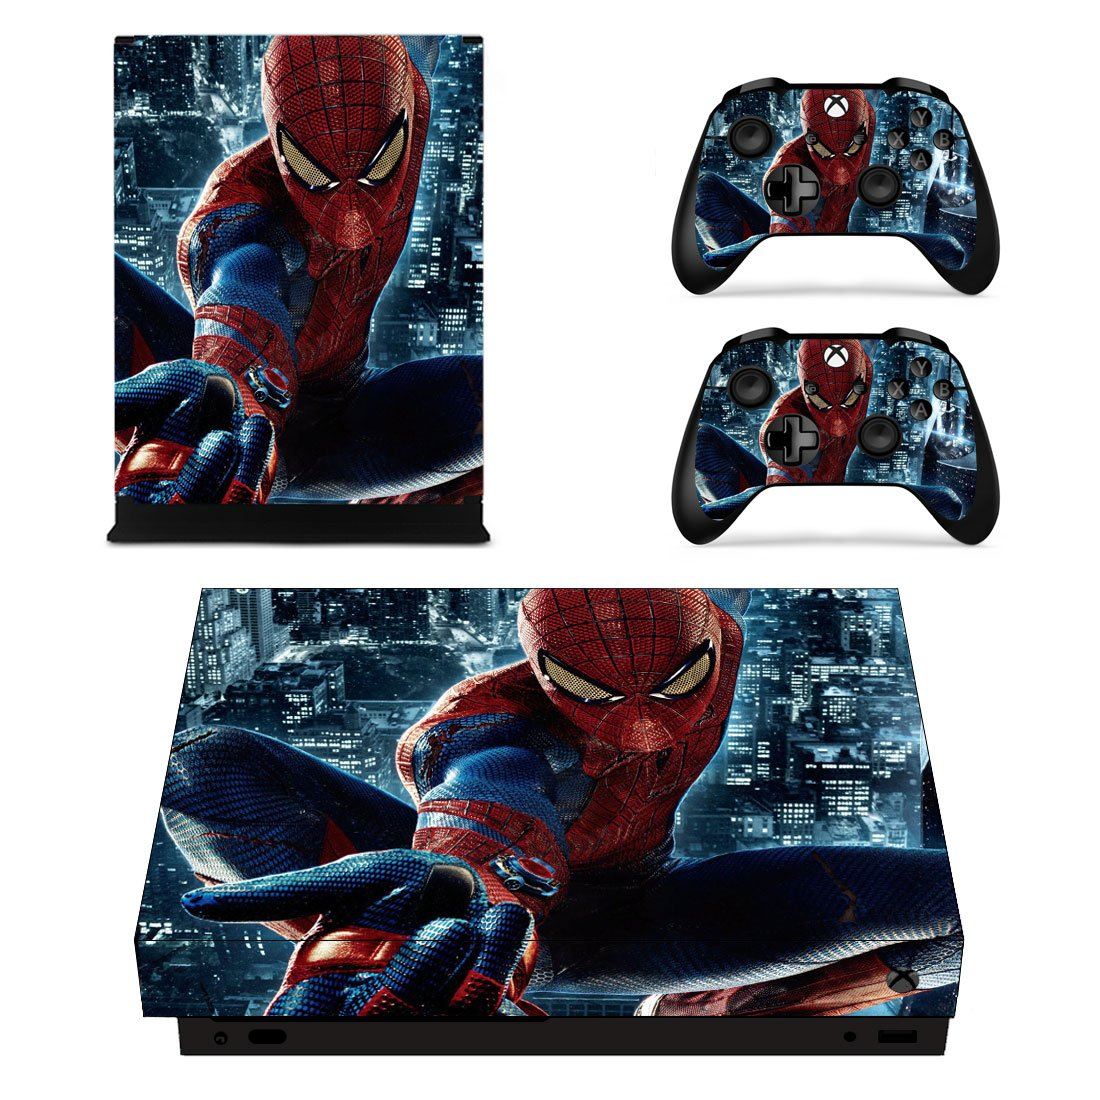 Spider-Man Xbox One X Skin Sticker Wrap